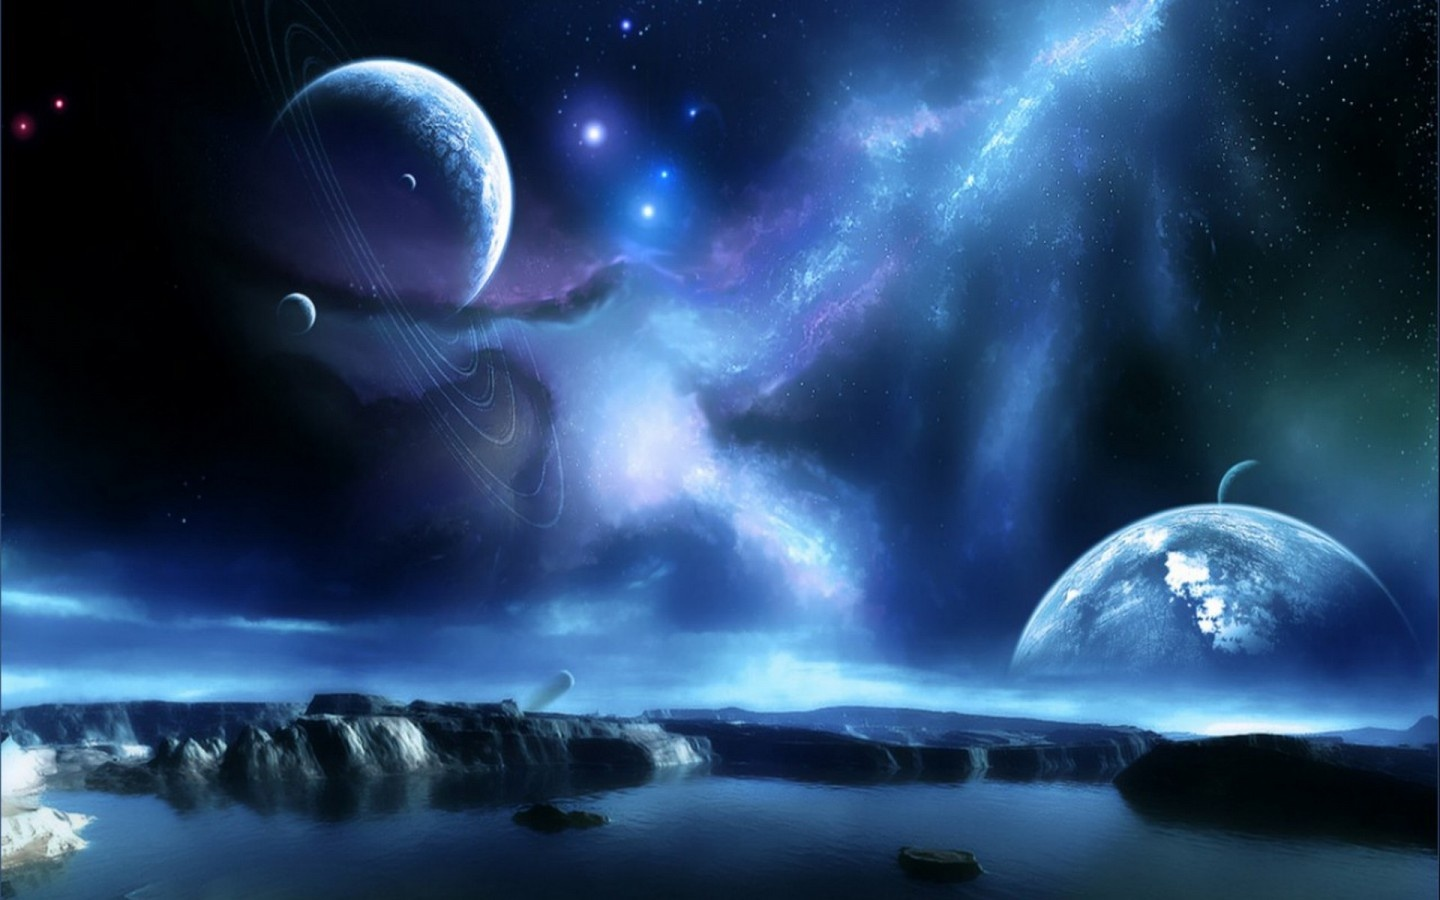 Space Wallpapers High Resolution: Free Space Wallpapers High Resolution